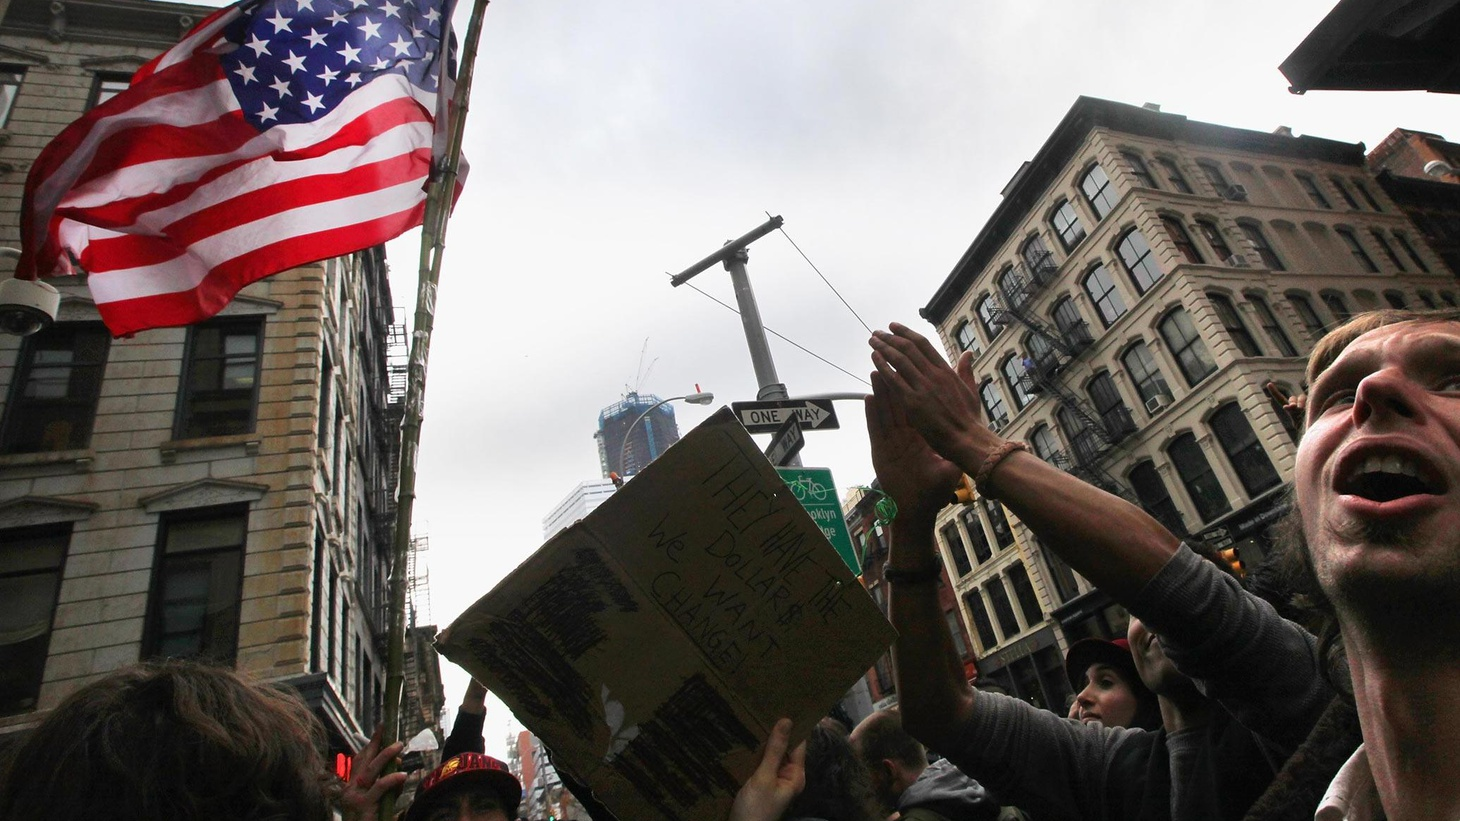 Demonstrators were evicted this morning from New York's Zuccotti Park. We hear what's happening in other places. Does the movement have a chance to make political change?